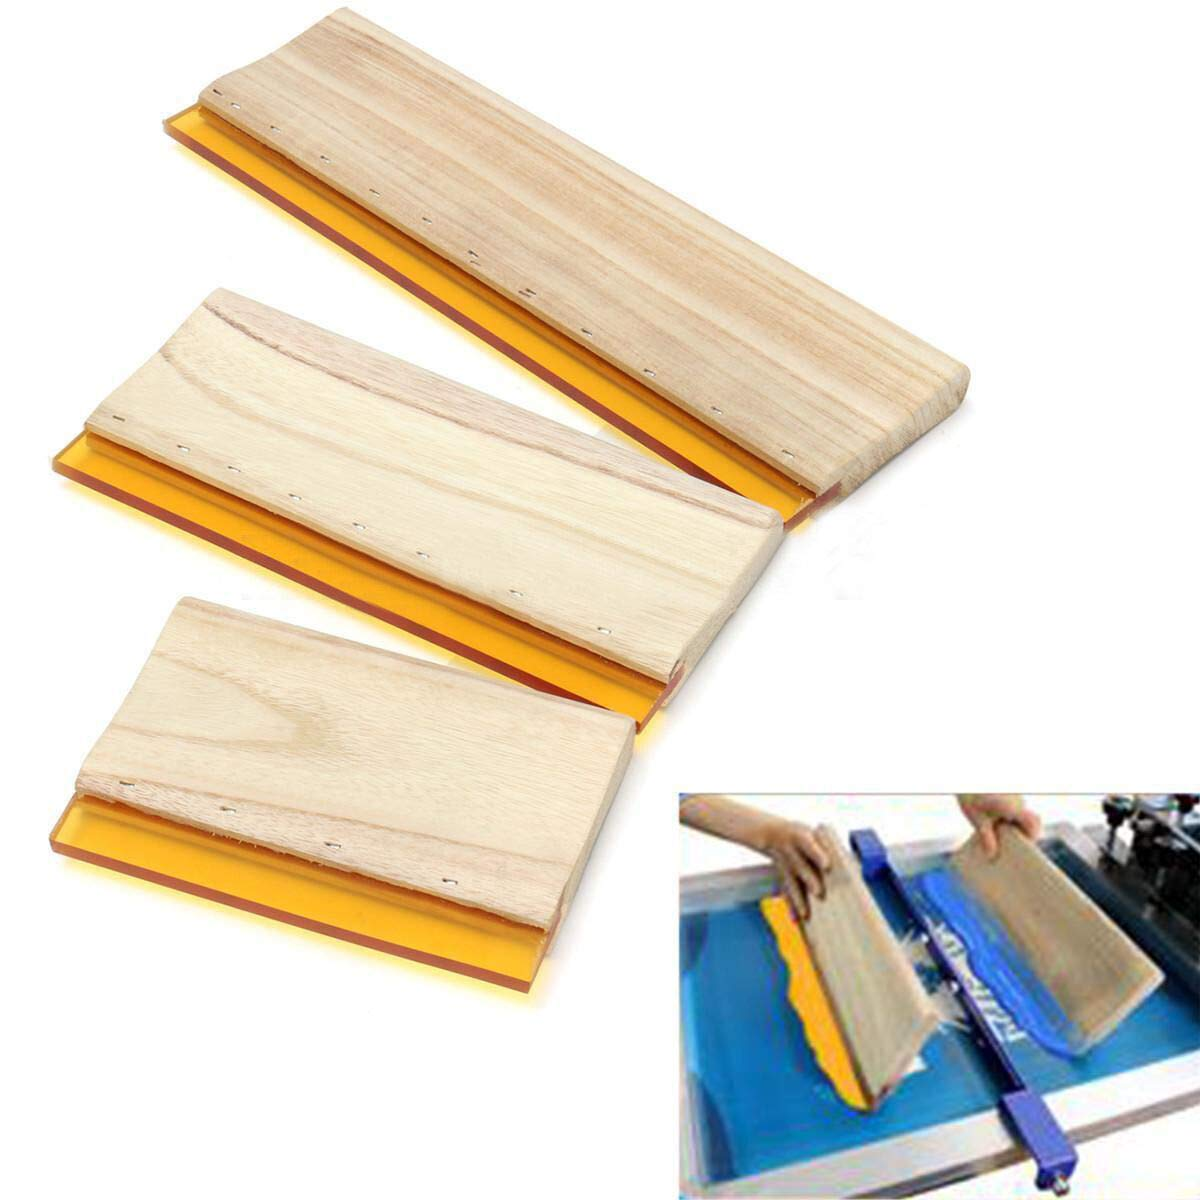 INTBUYING Screen Printing Squeegee Wooden Ink Scraper Kit 75 Durometer 4 inches Wide by INTBUYING